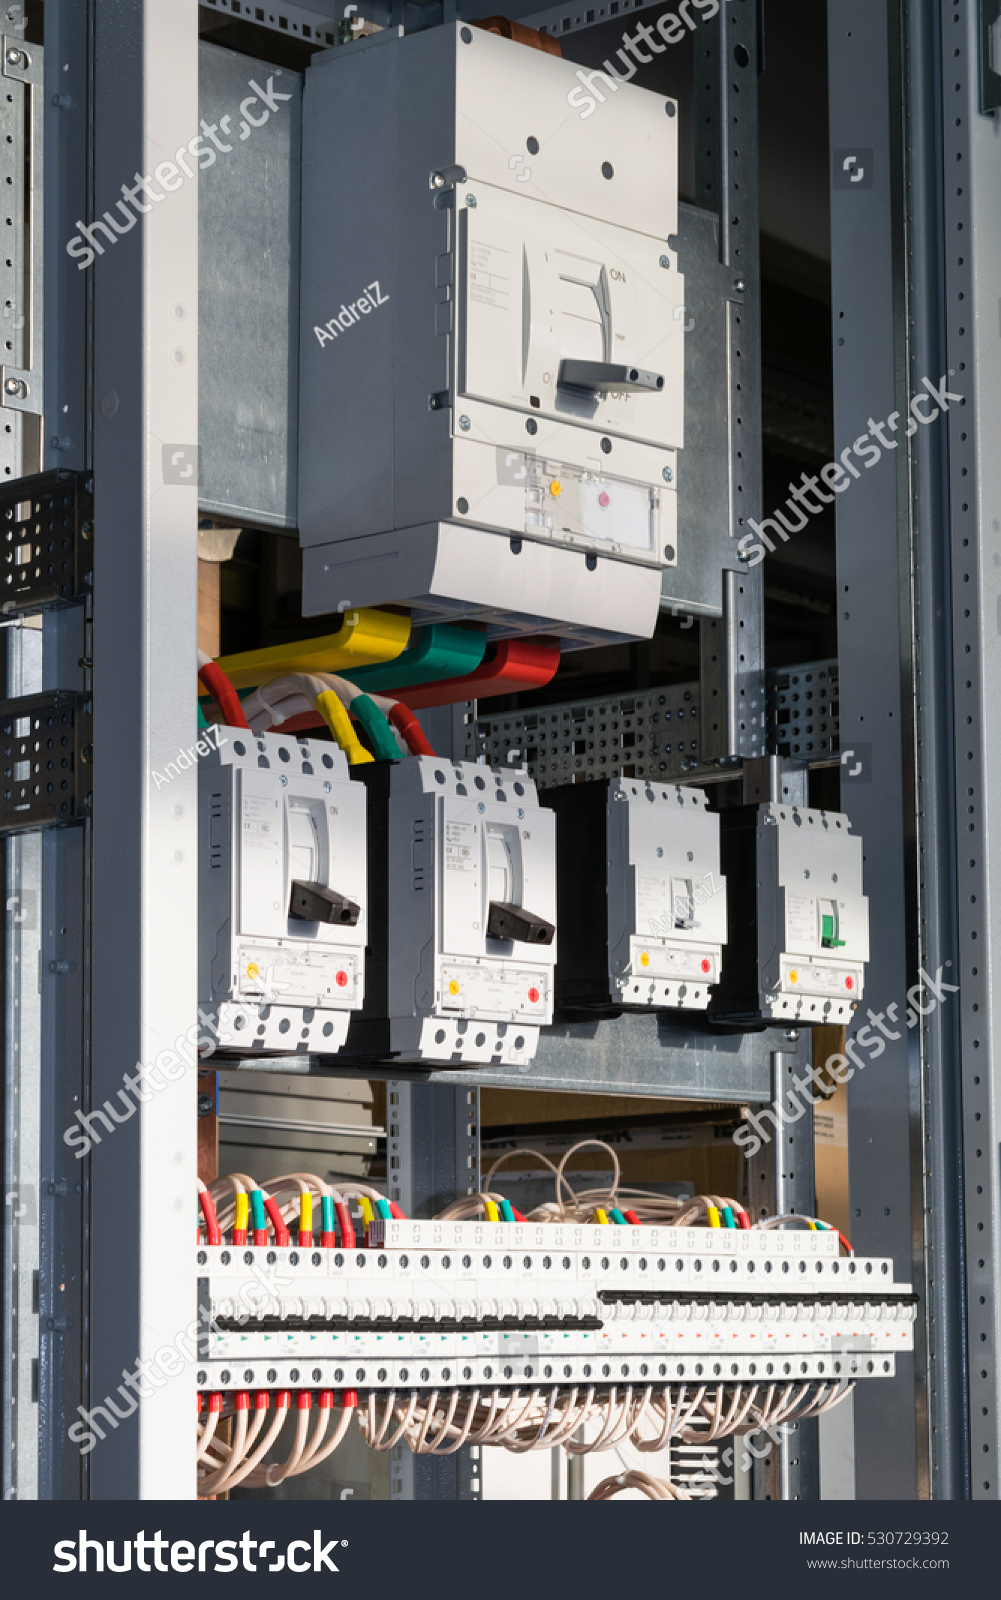 Comfortable 3 Single Coil Pickups Tiny 2 Humbucker 5 Way Switch Wiring Rectangular Car Alarm Installation Wiring Diagram 3 Way Switch Guitar Old Bulldog Alarm System PinkIbanez Support Connecting Cables Cable Lugs Circuit Breakers Stock Photo ..